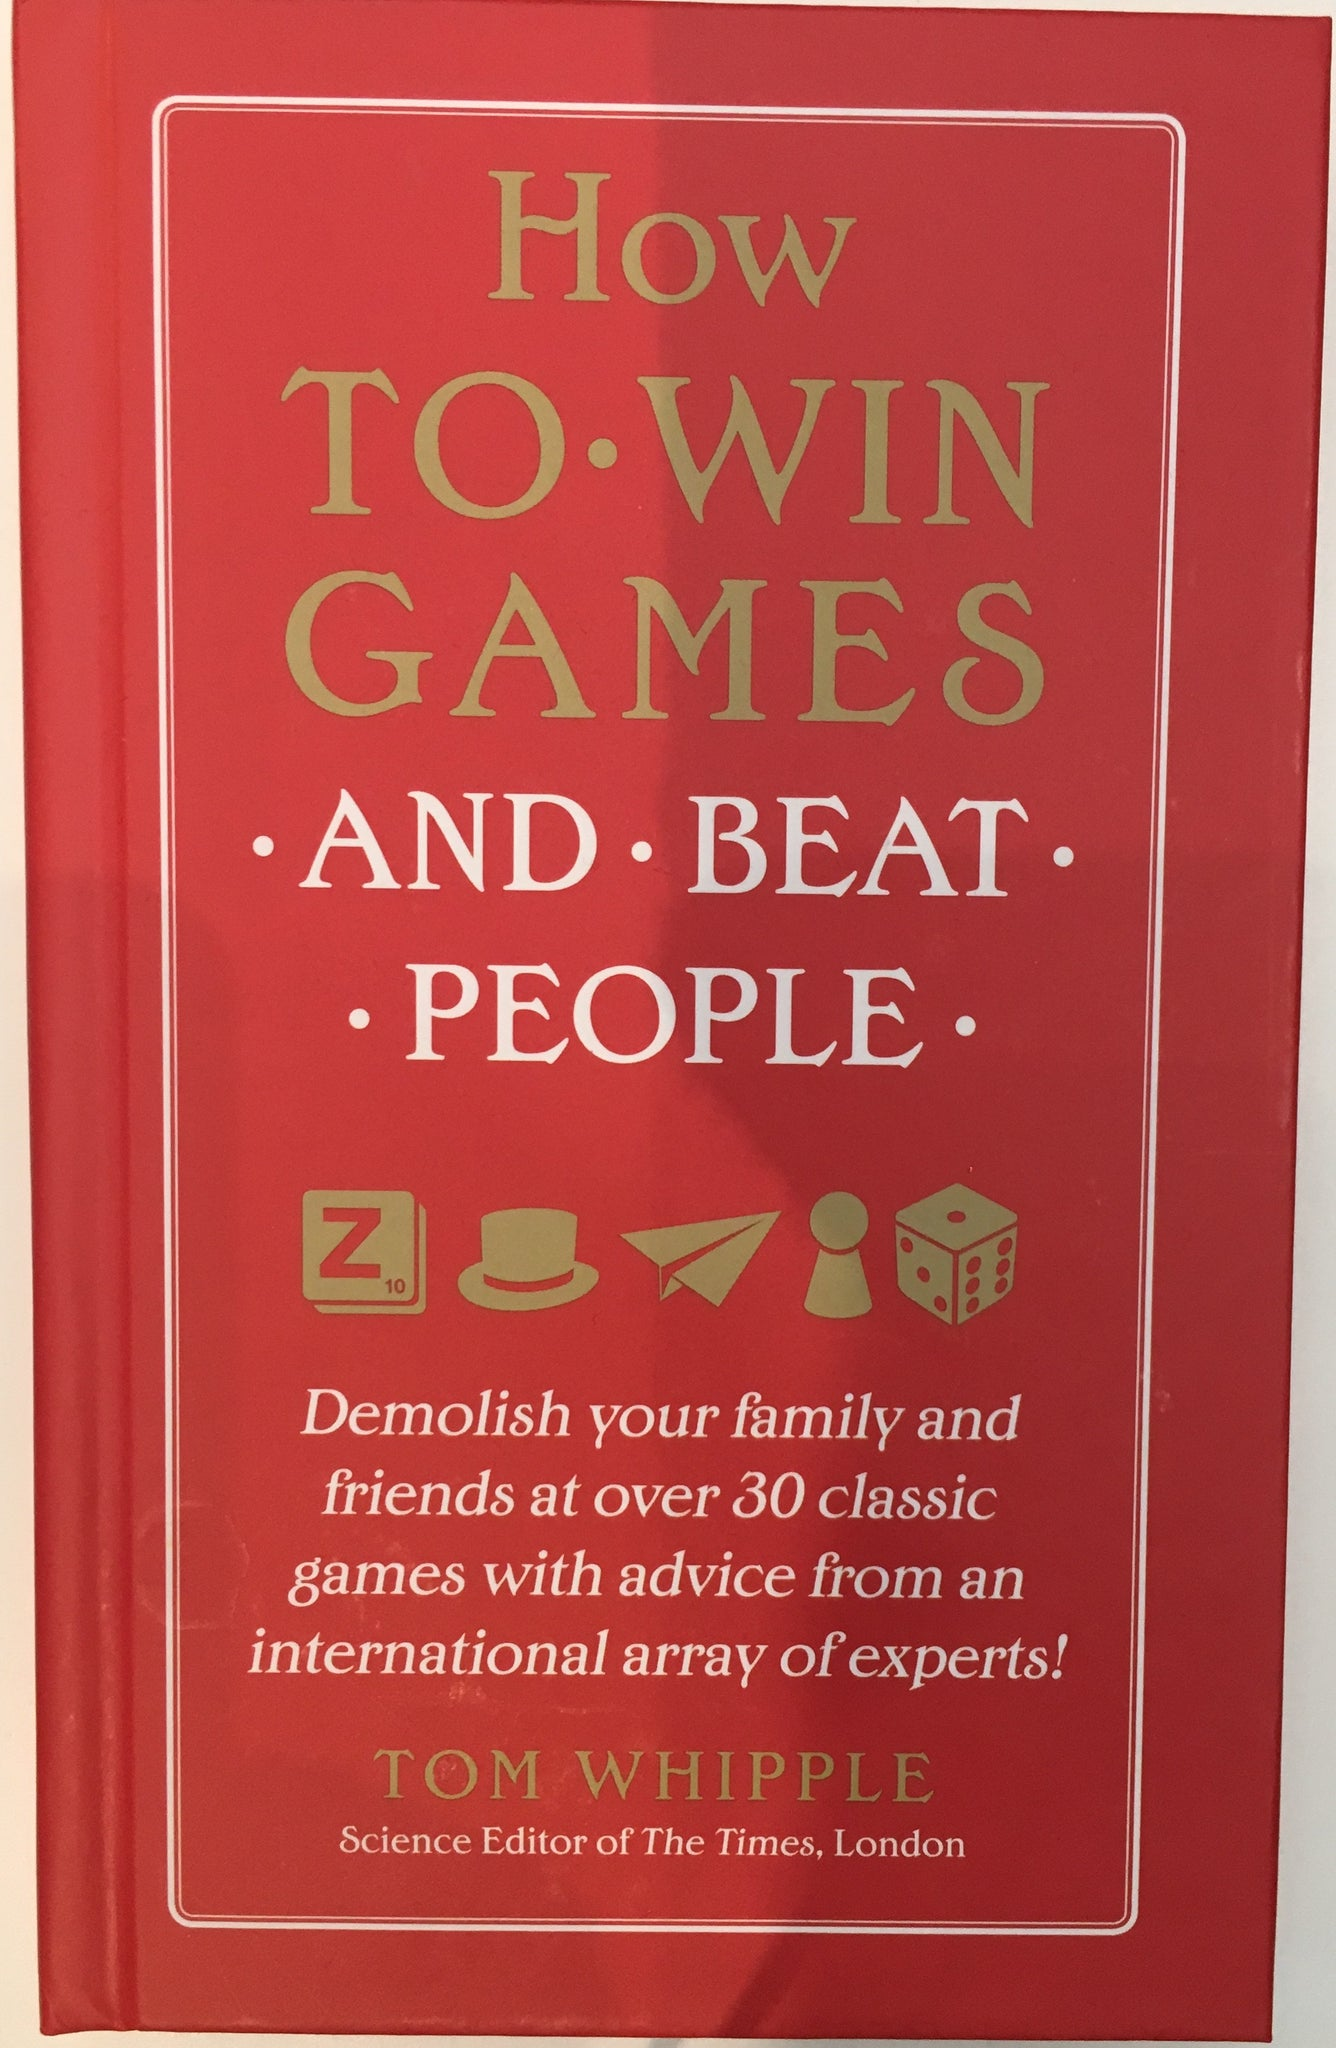 How to Win at Games By Tom Whipple